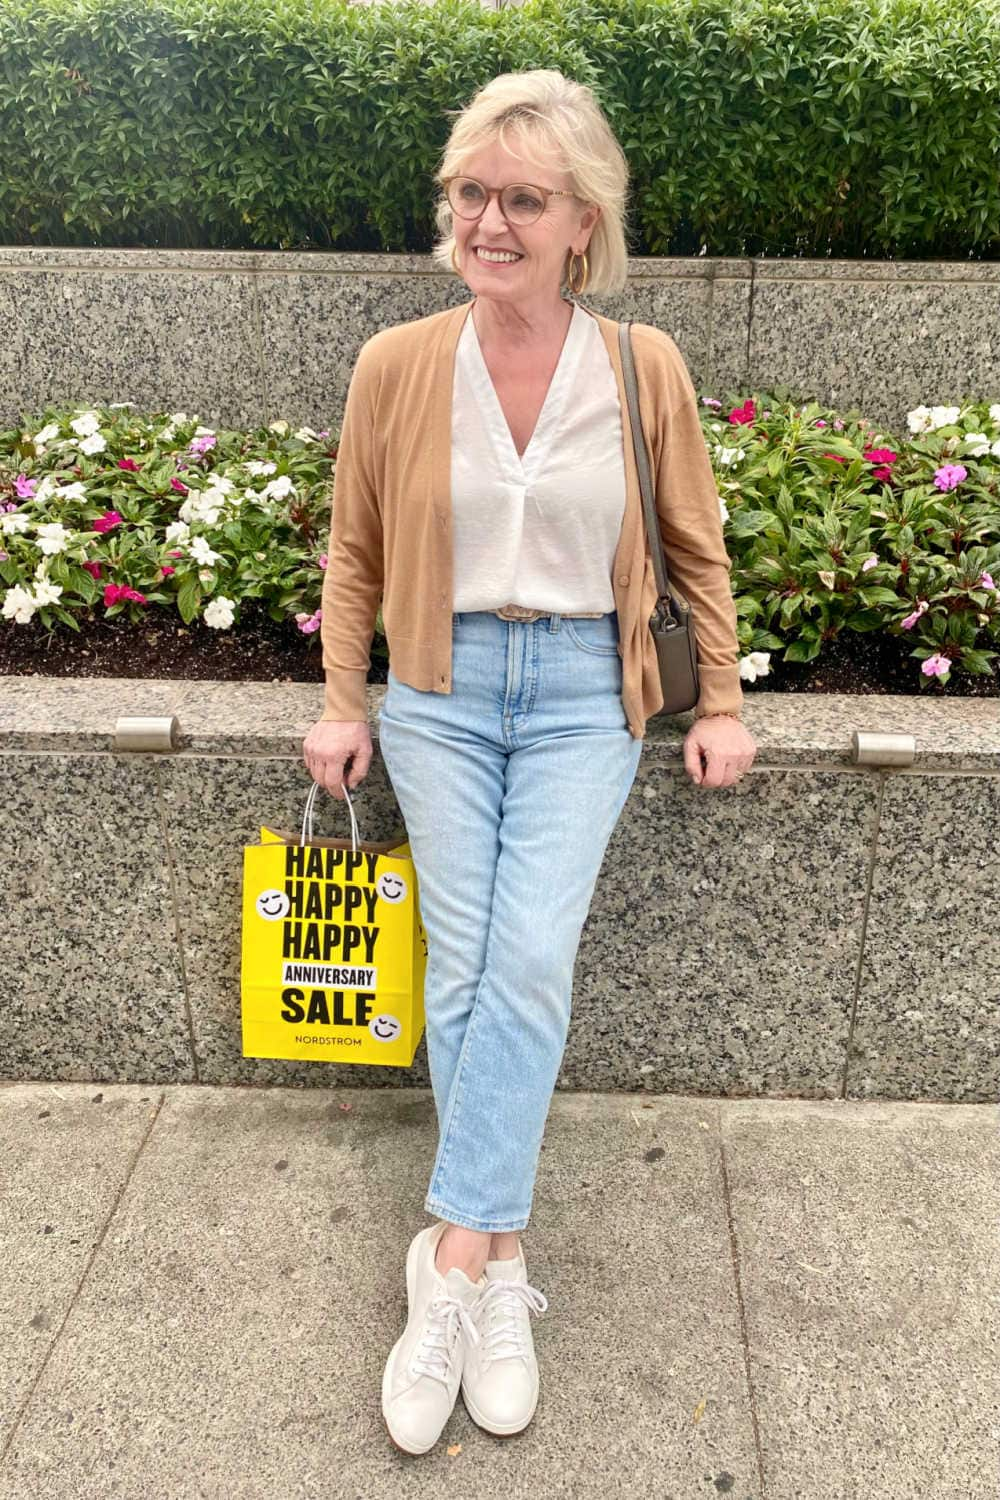 blonde woman wearing camel colored cardigan, blue jeans, metallic sneakers leaning against planter